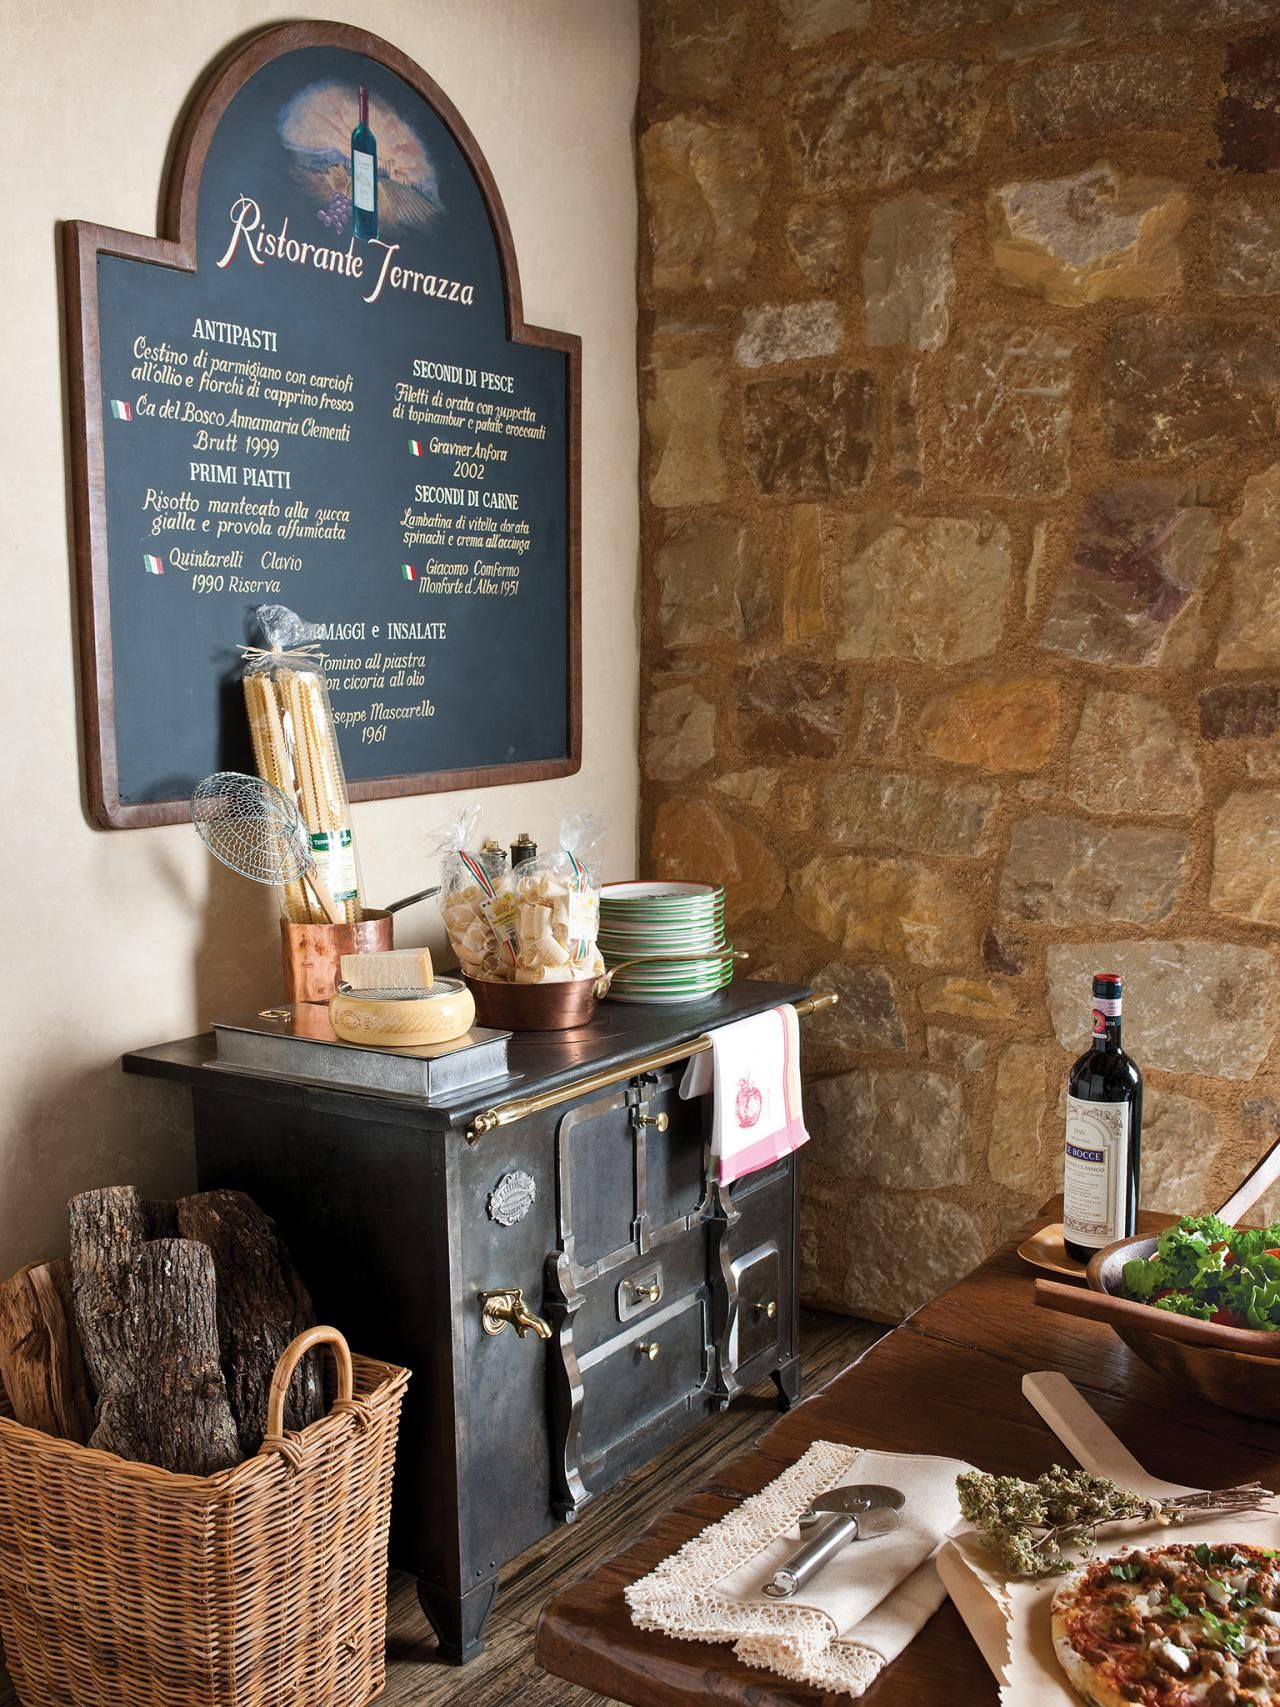 Delightful The Vintage Menu Board And 19th Century Cast Iron Stove Give This Simple  Kitchen An Old